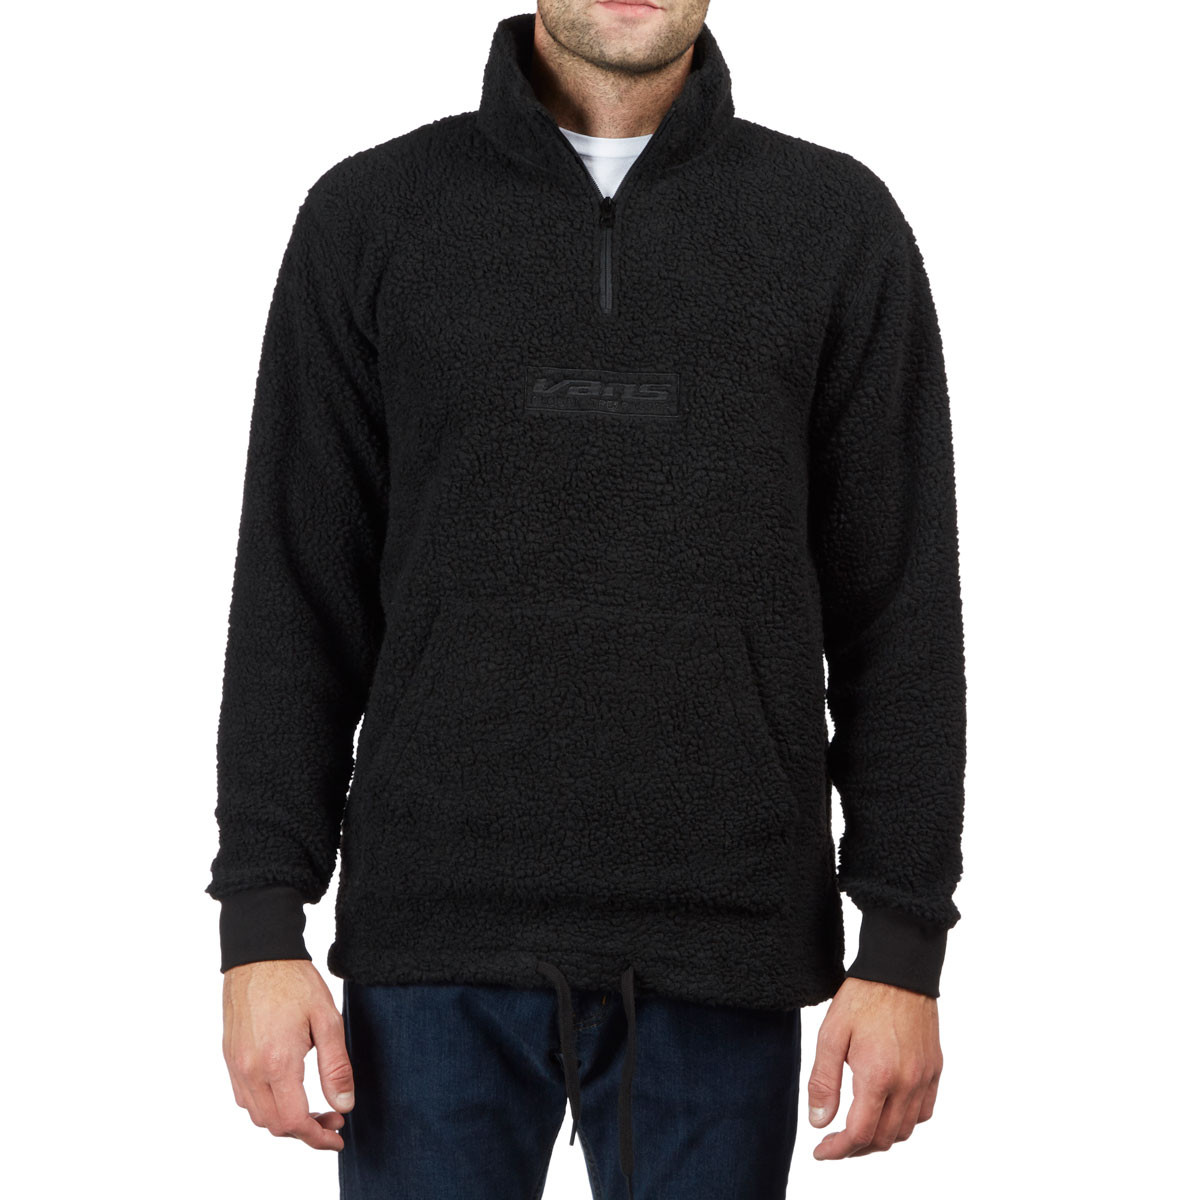 Vans Global Trespassers Quarter Zip Sweatshirt - Black e3a9fb3fa83e